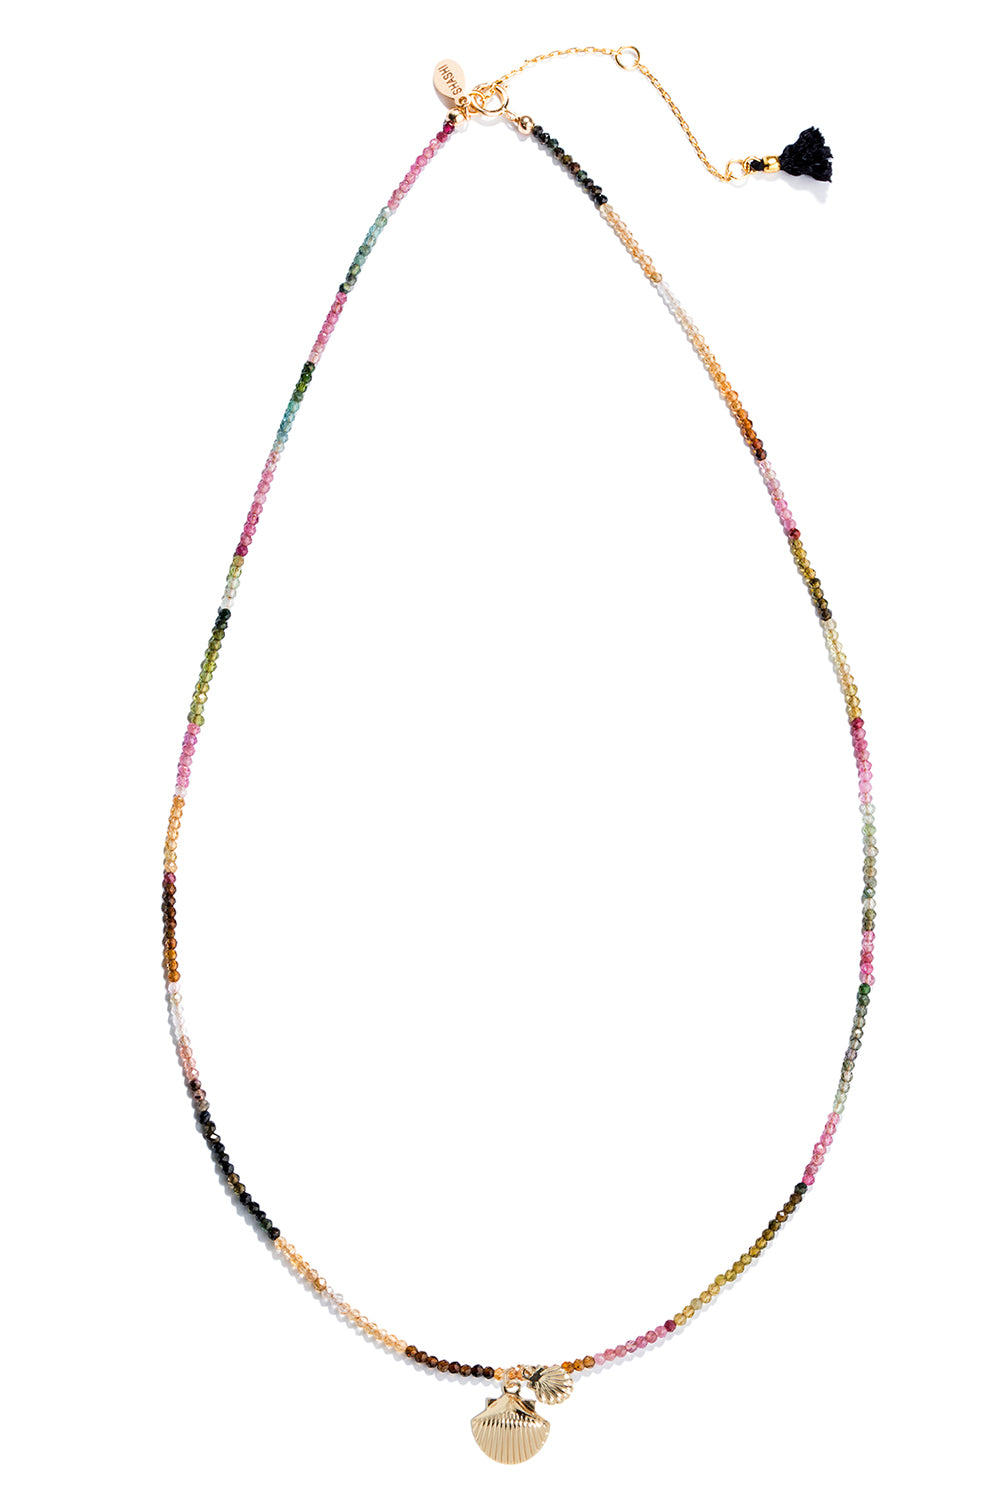 Black Label Petite Multi Tourmaline Bracelet/Necklace